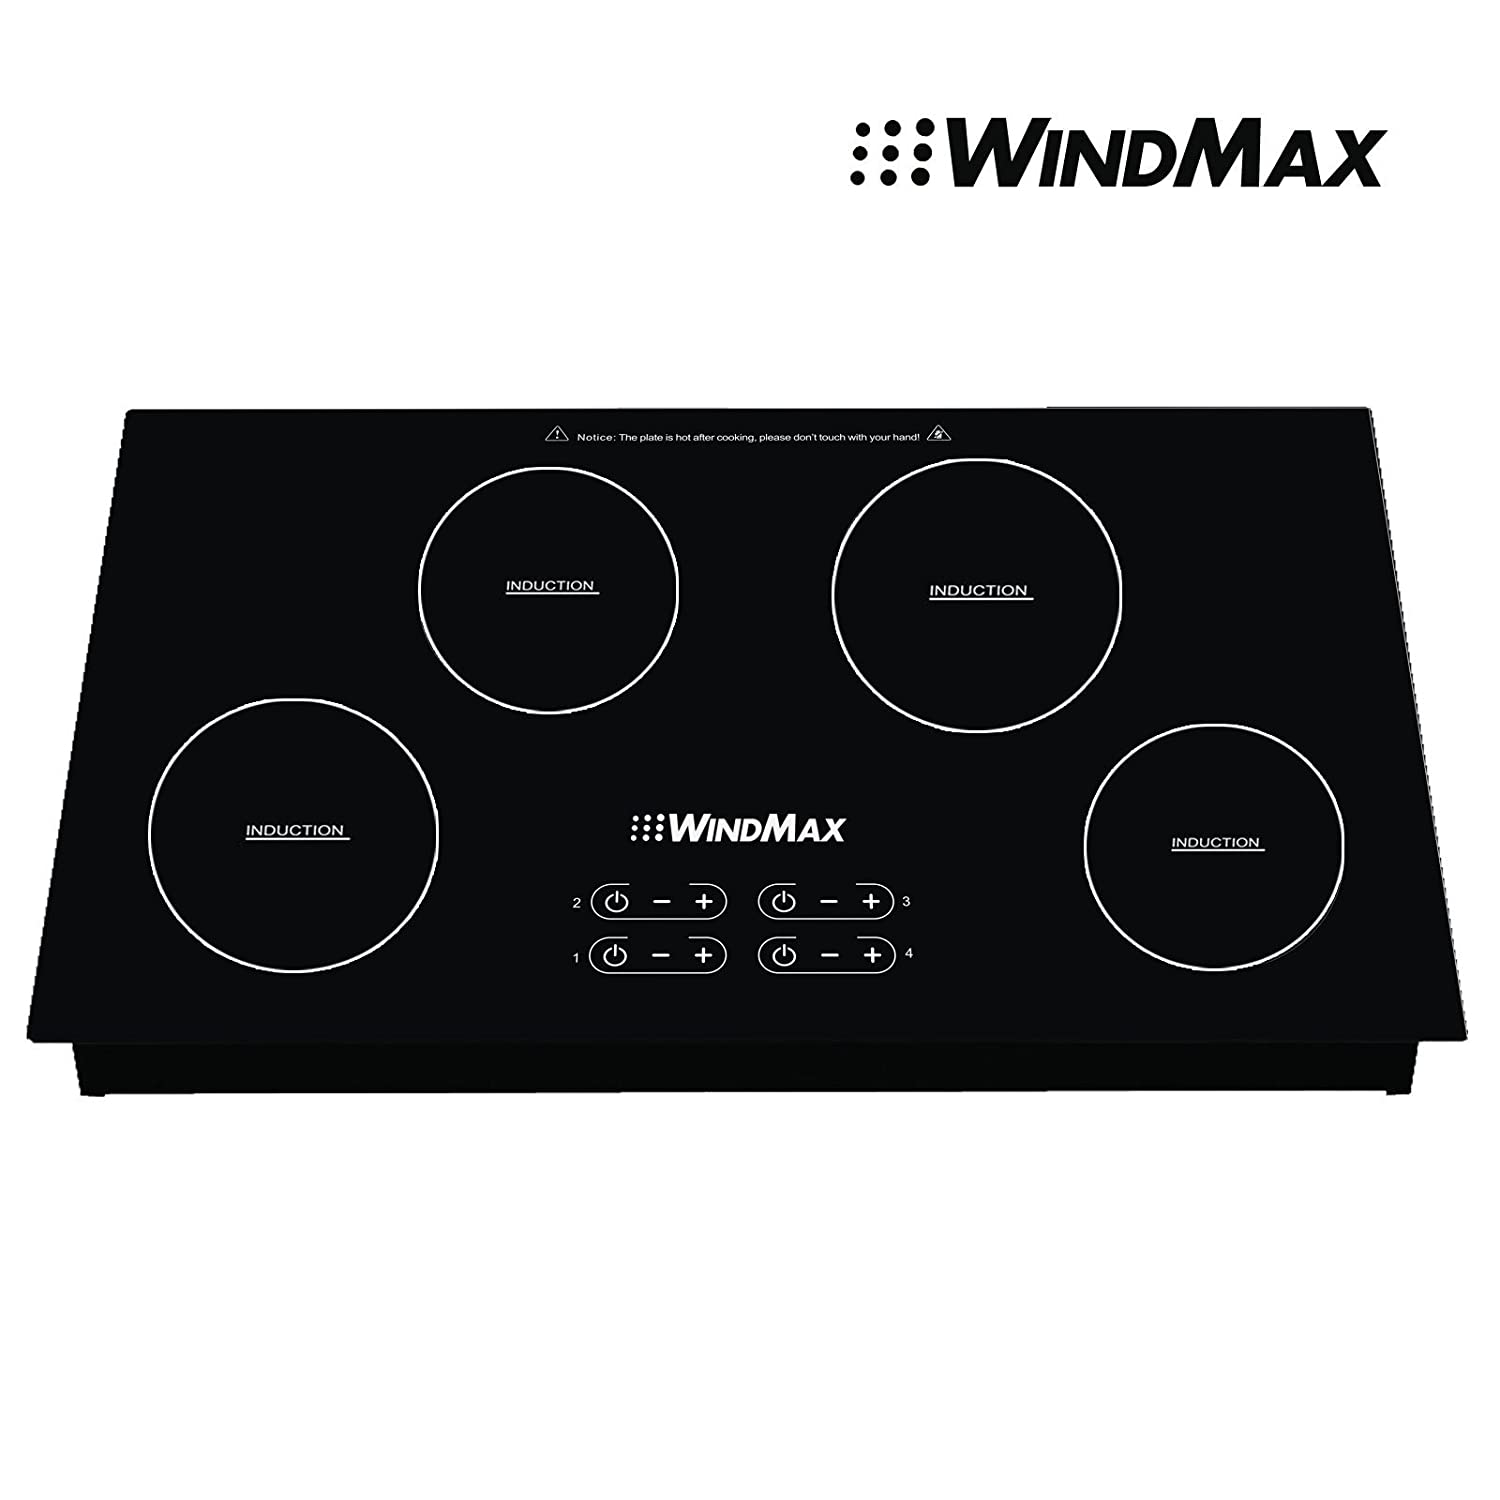 Windmax 31.5 inch Induction Hob 4 Burners Stove Cooktops Glass Household Electric Cooker